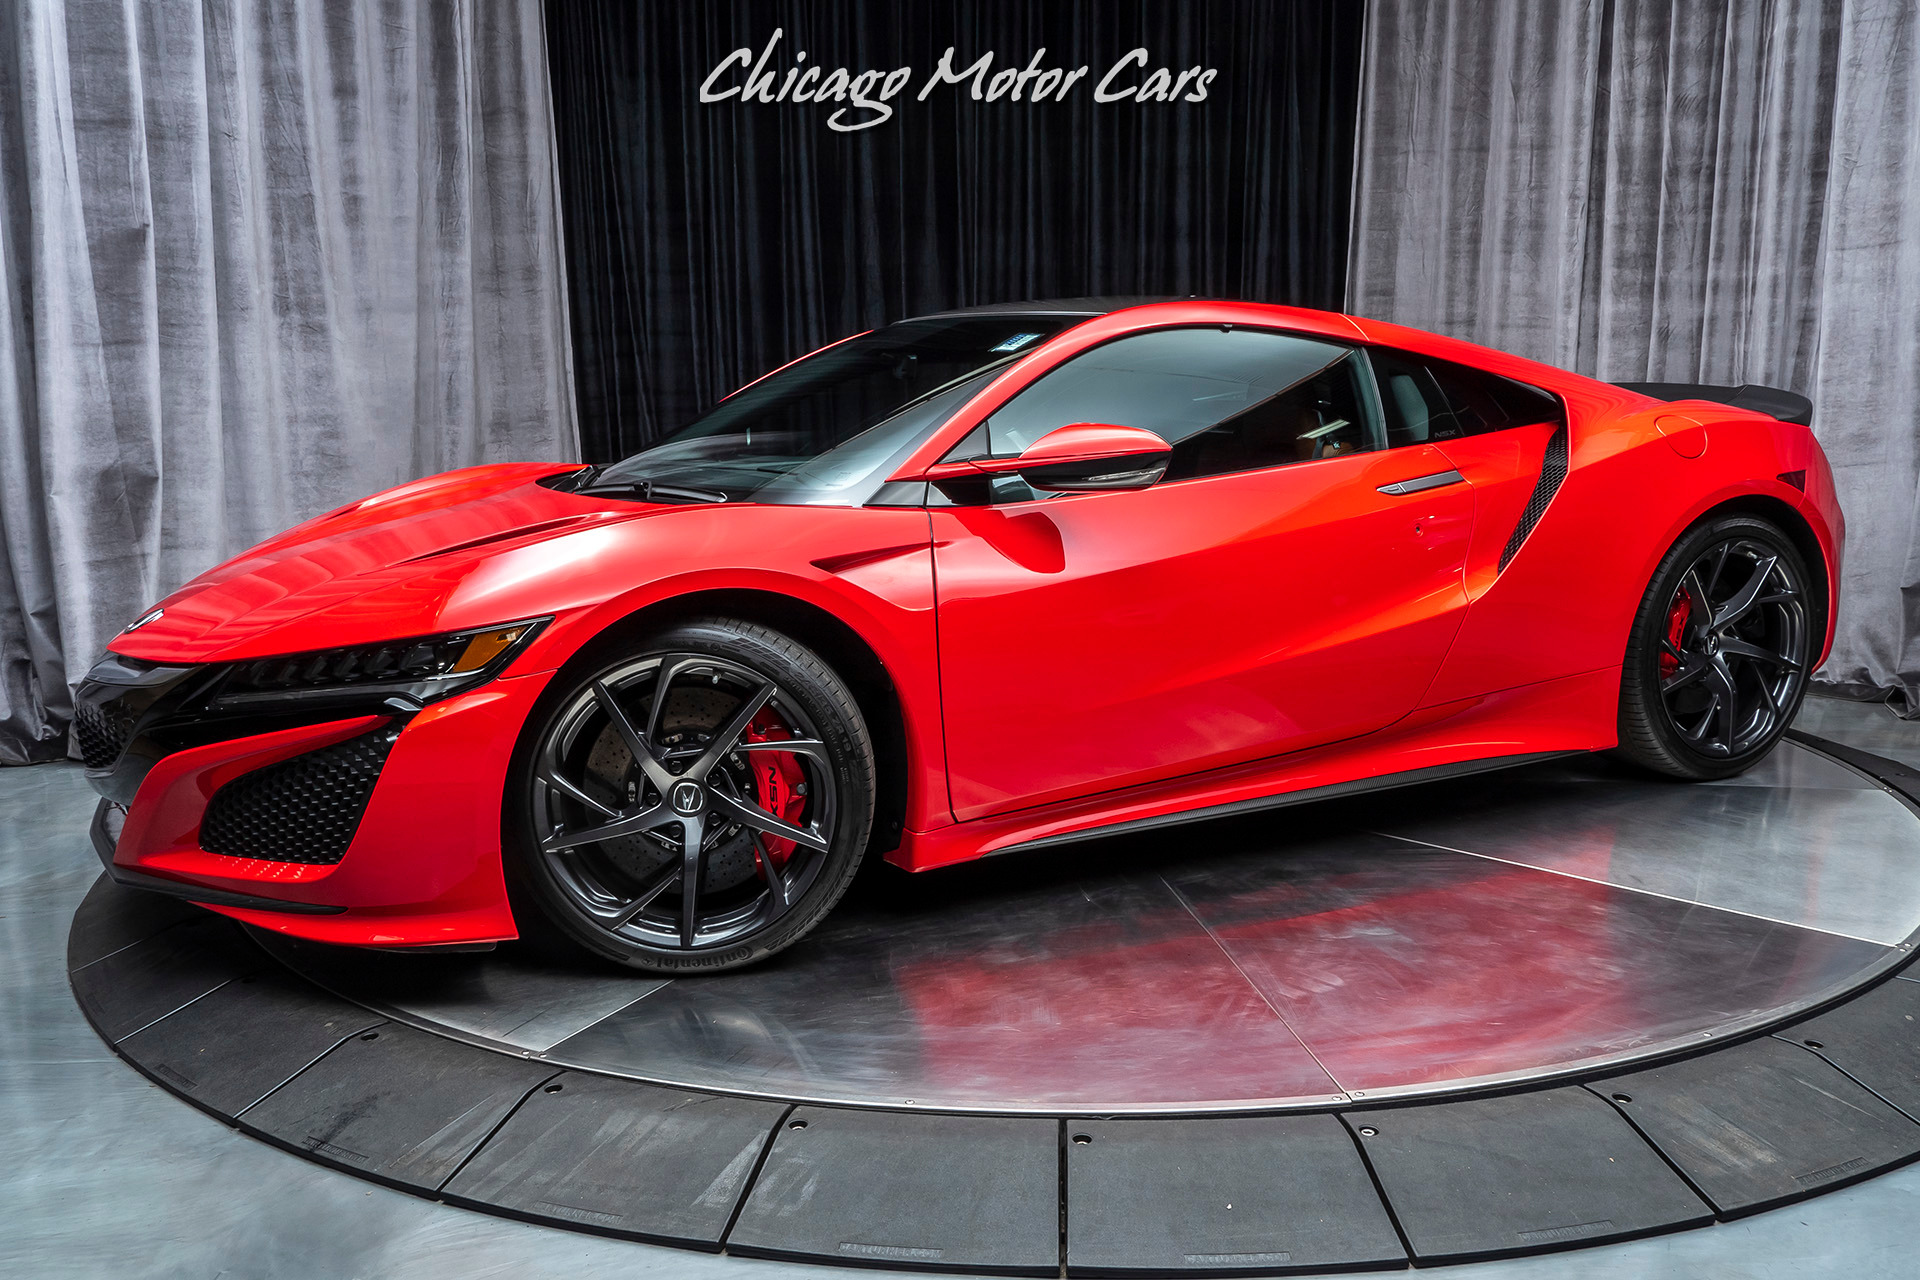 Used 2017 Acura NSX Coupe **MSRP $200,500 ONLY 3K MILES** For Sale